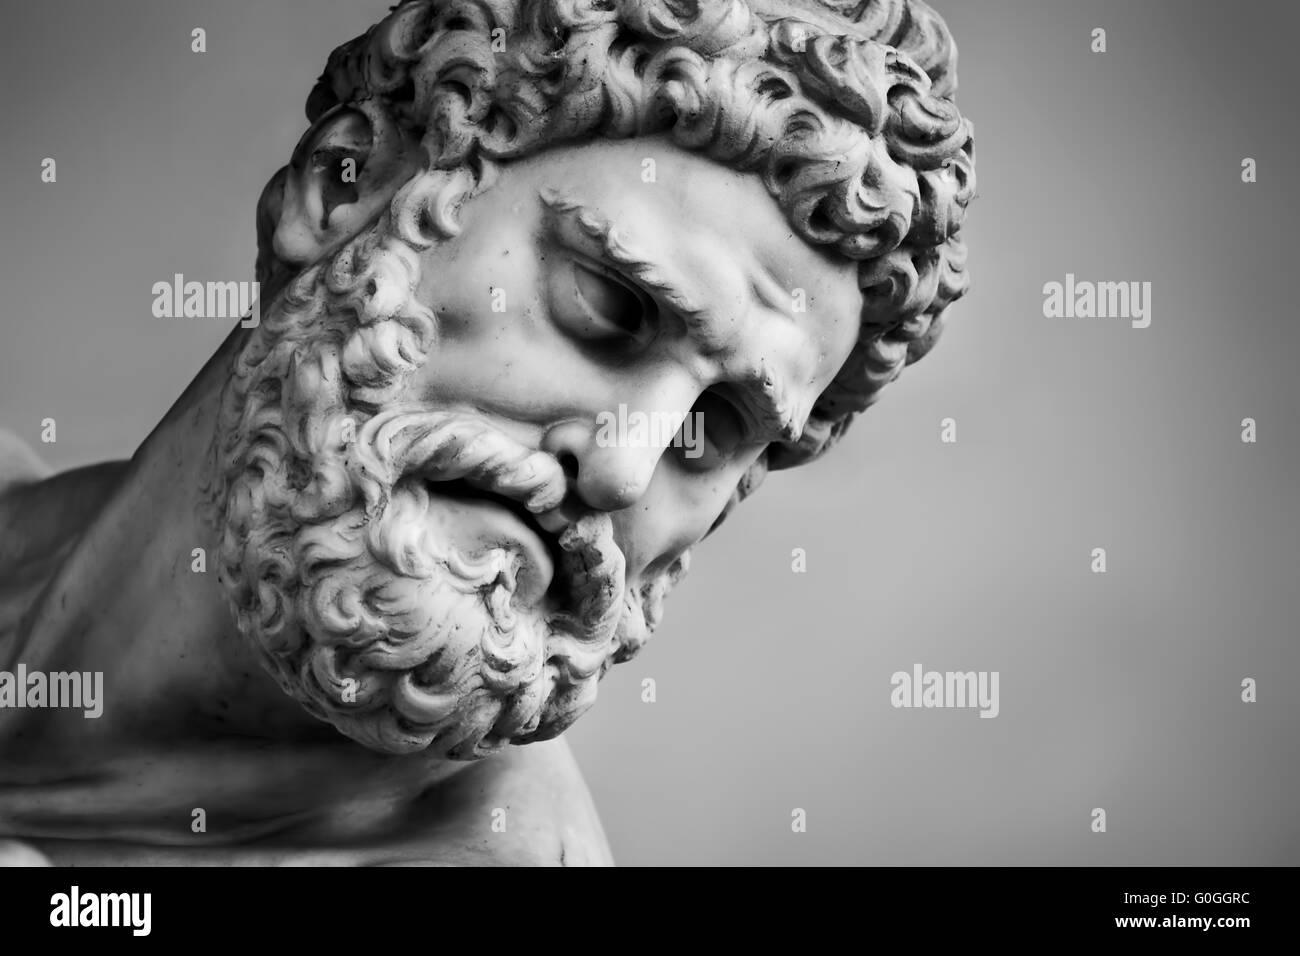 Ancient sculpture of Hercules and Nessus. Florence, Italy. Head close-up - Stock Image